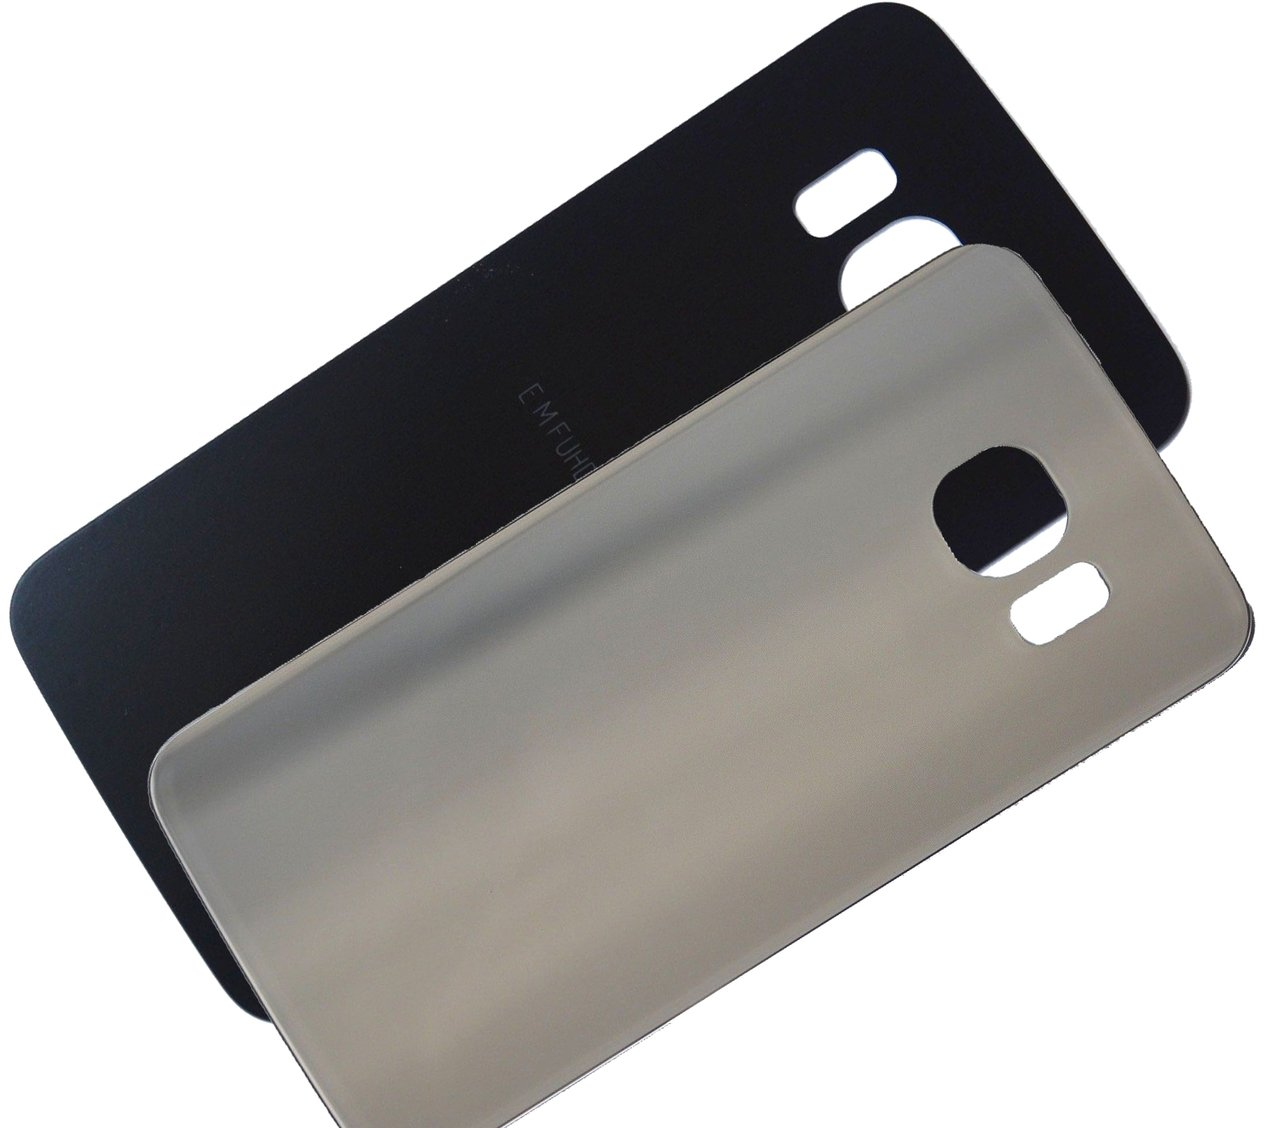 New OEM Samsung Galaxy S6 Edge G925A G925T Back Cover Glass Gold